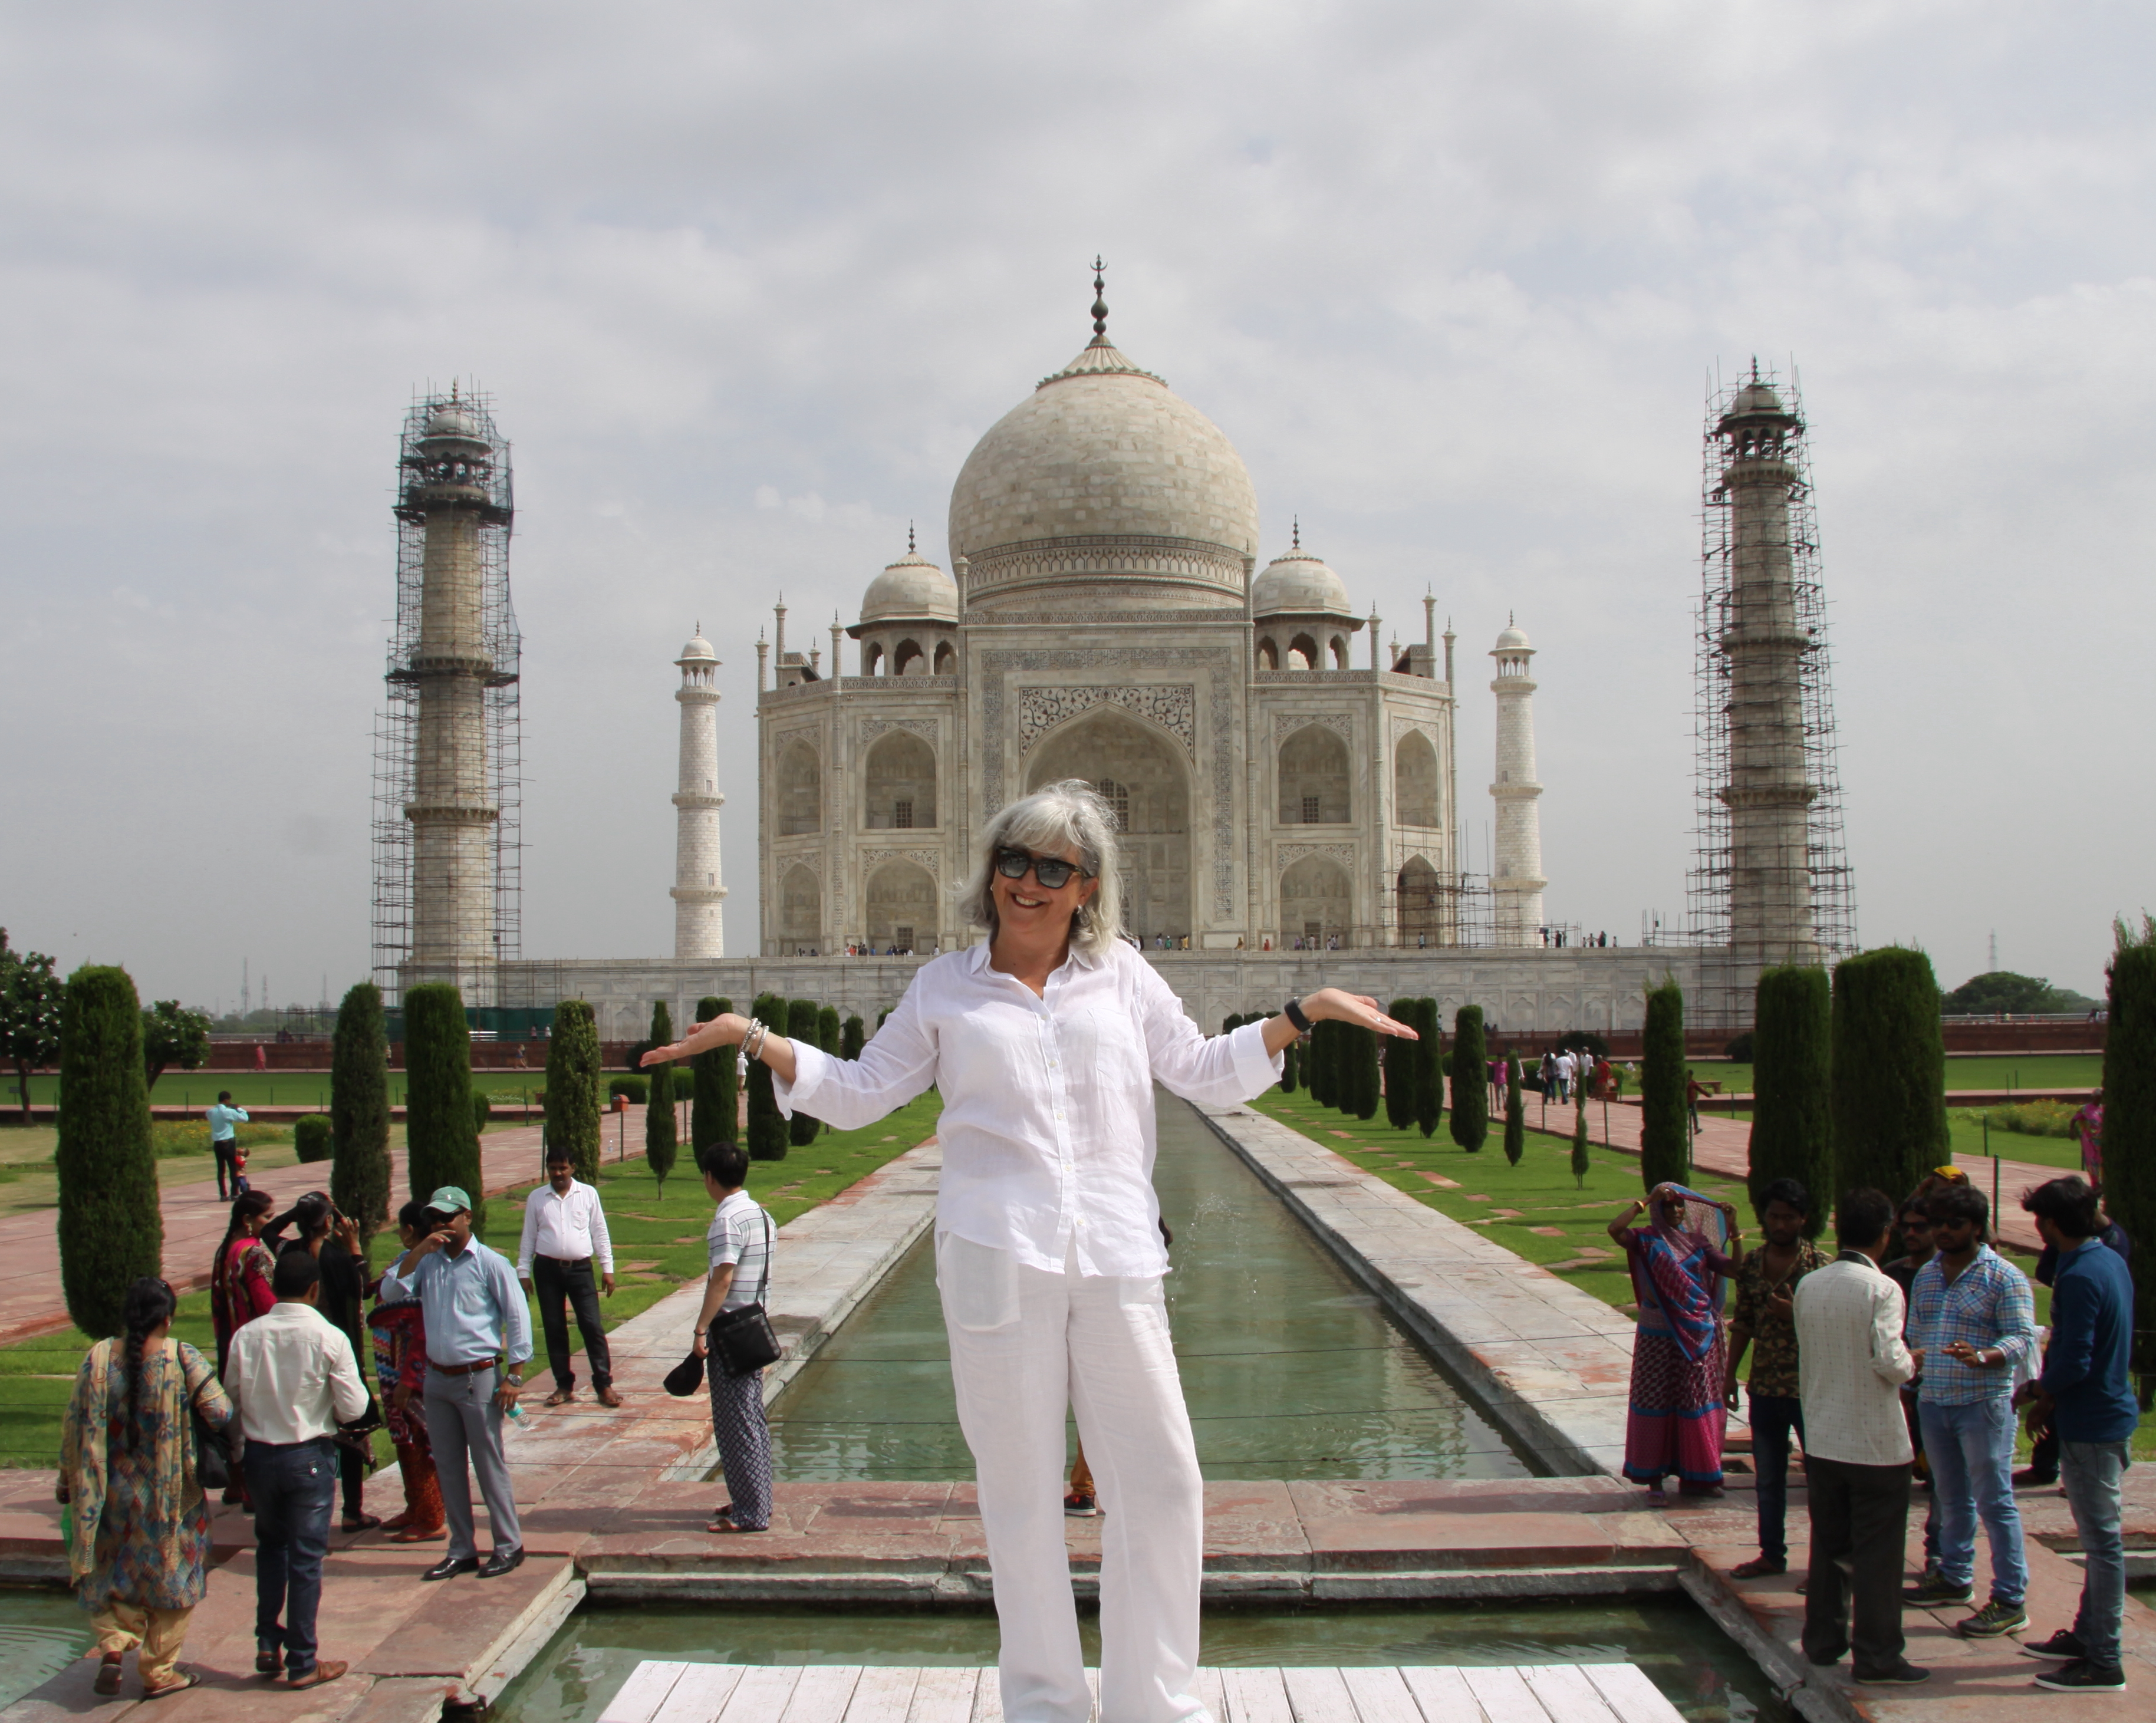 Me in India